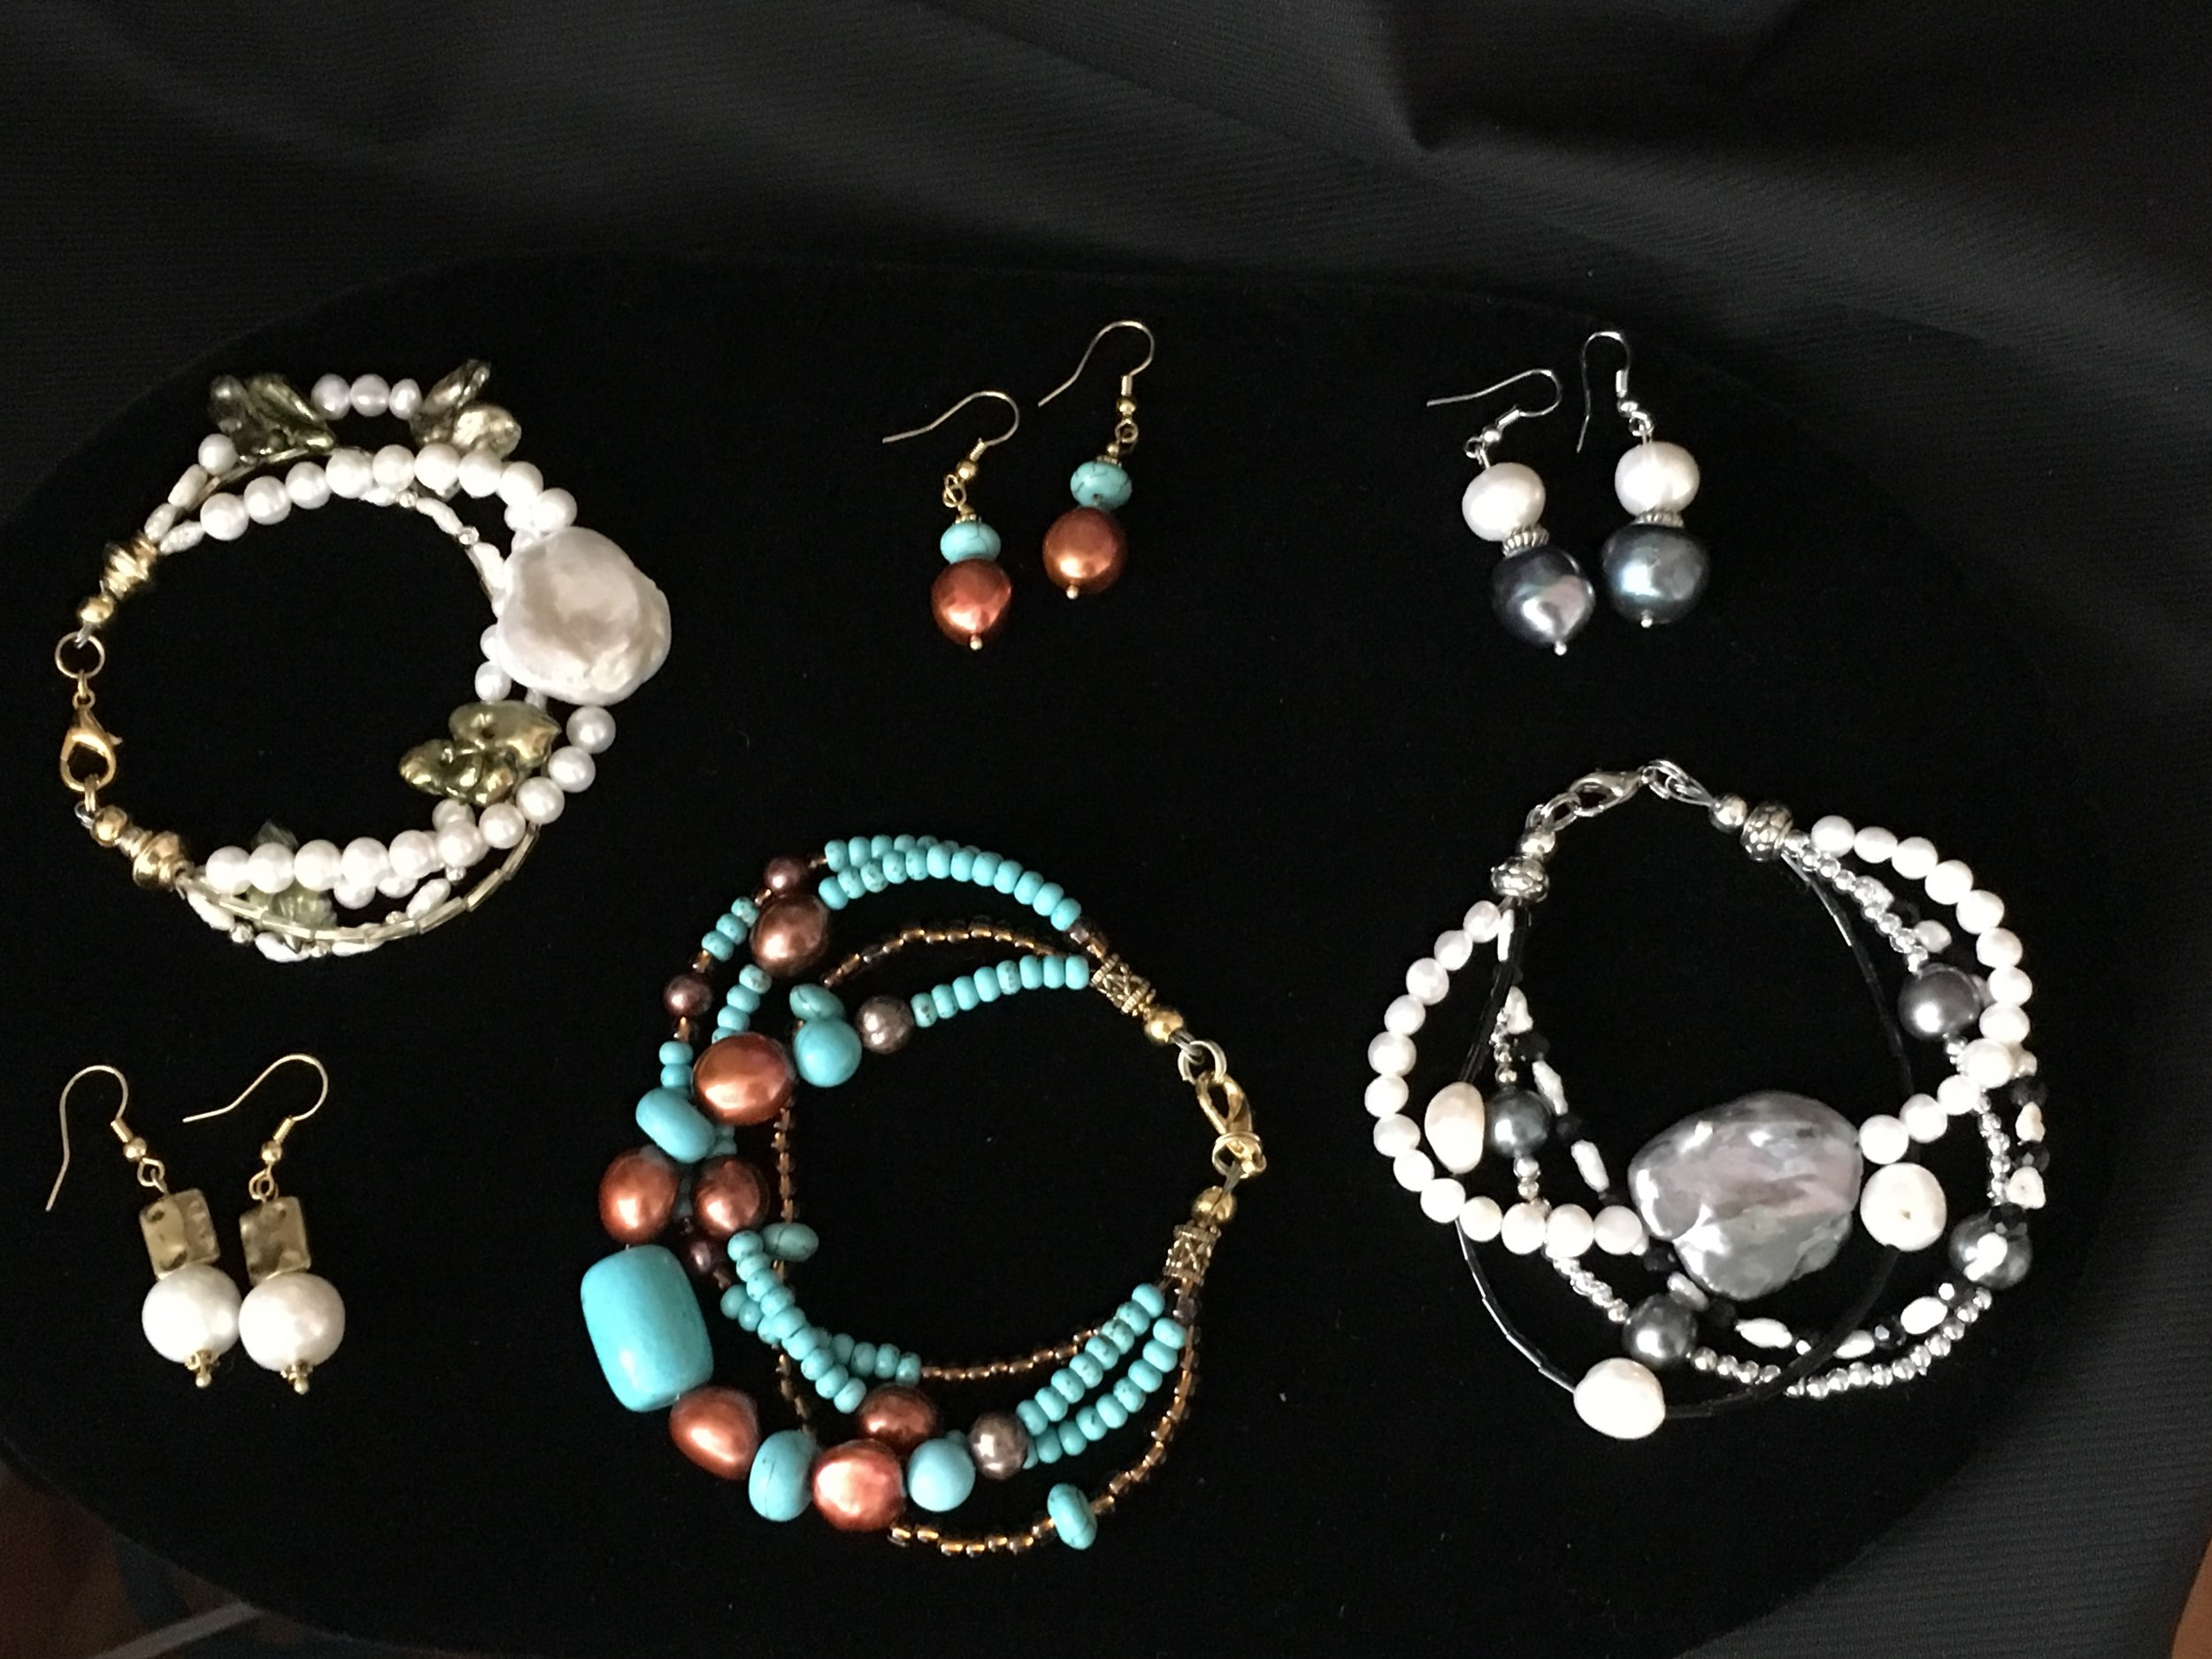 Four strand bracelets and earrings with raw fresh water pearls, turquoise and jet